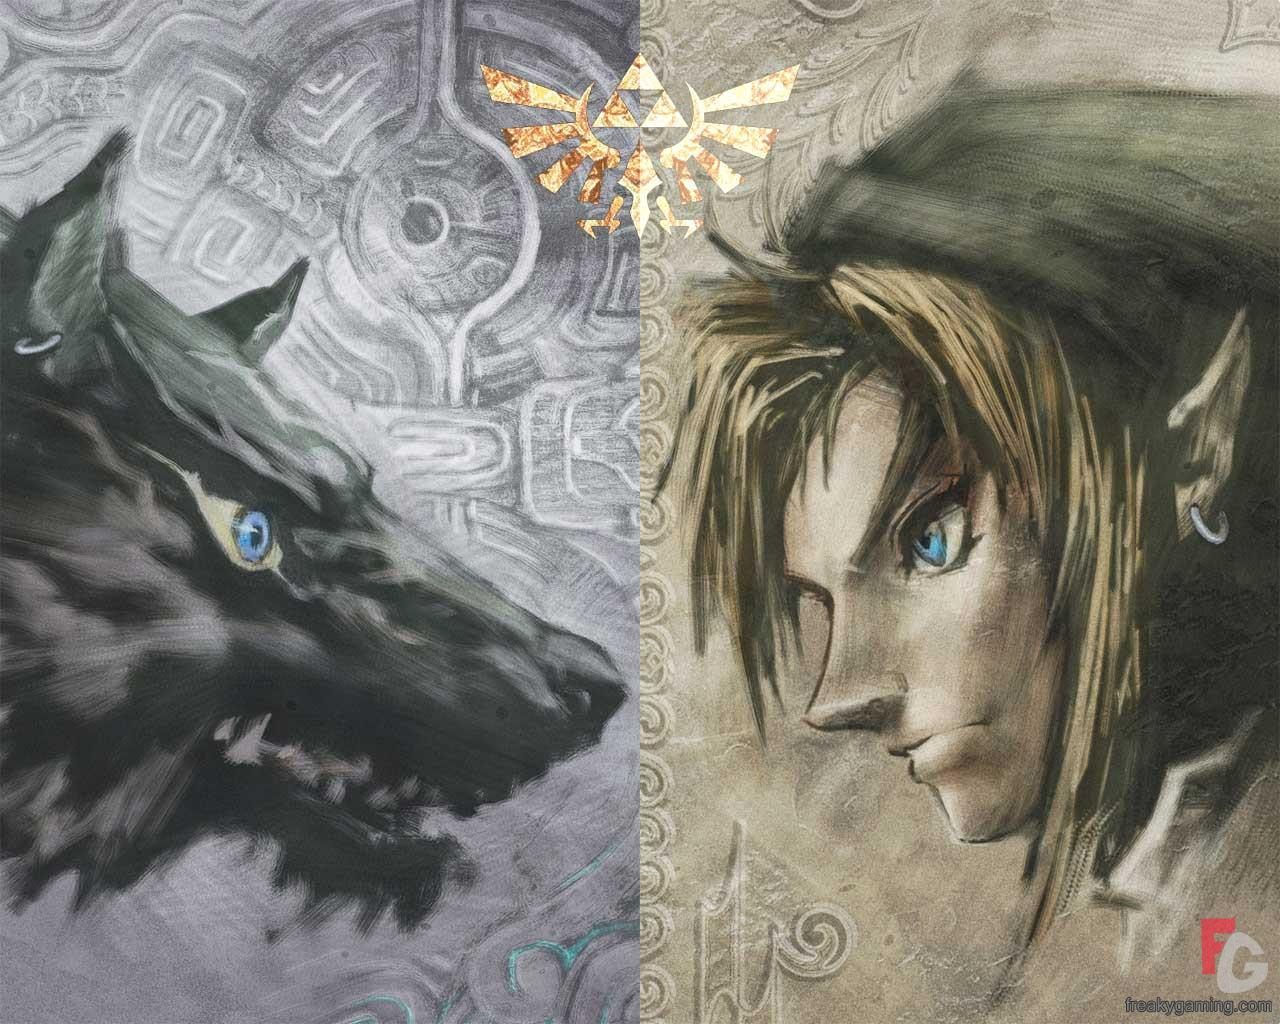 Twilight Princess Wallpapers 1280x1024